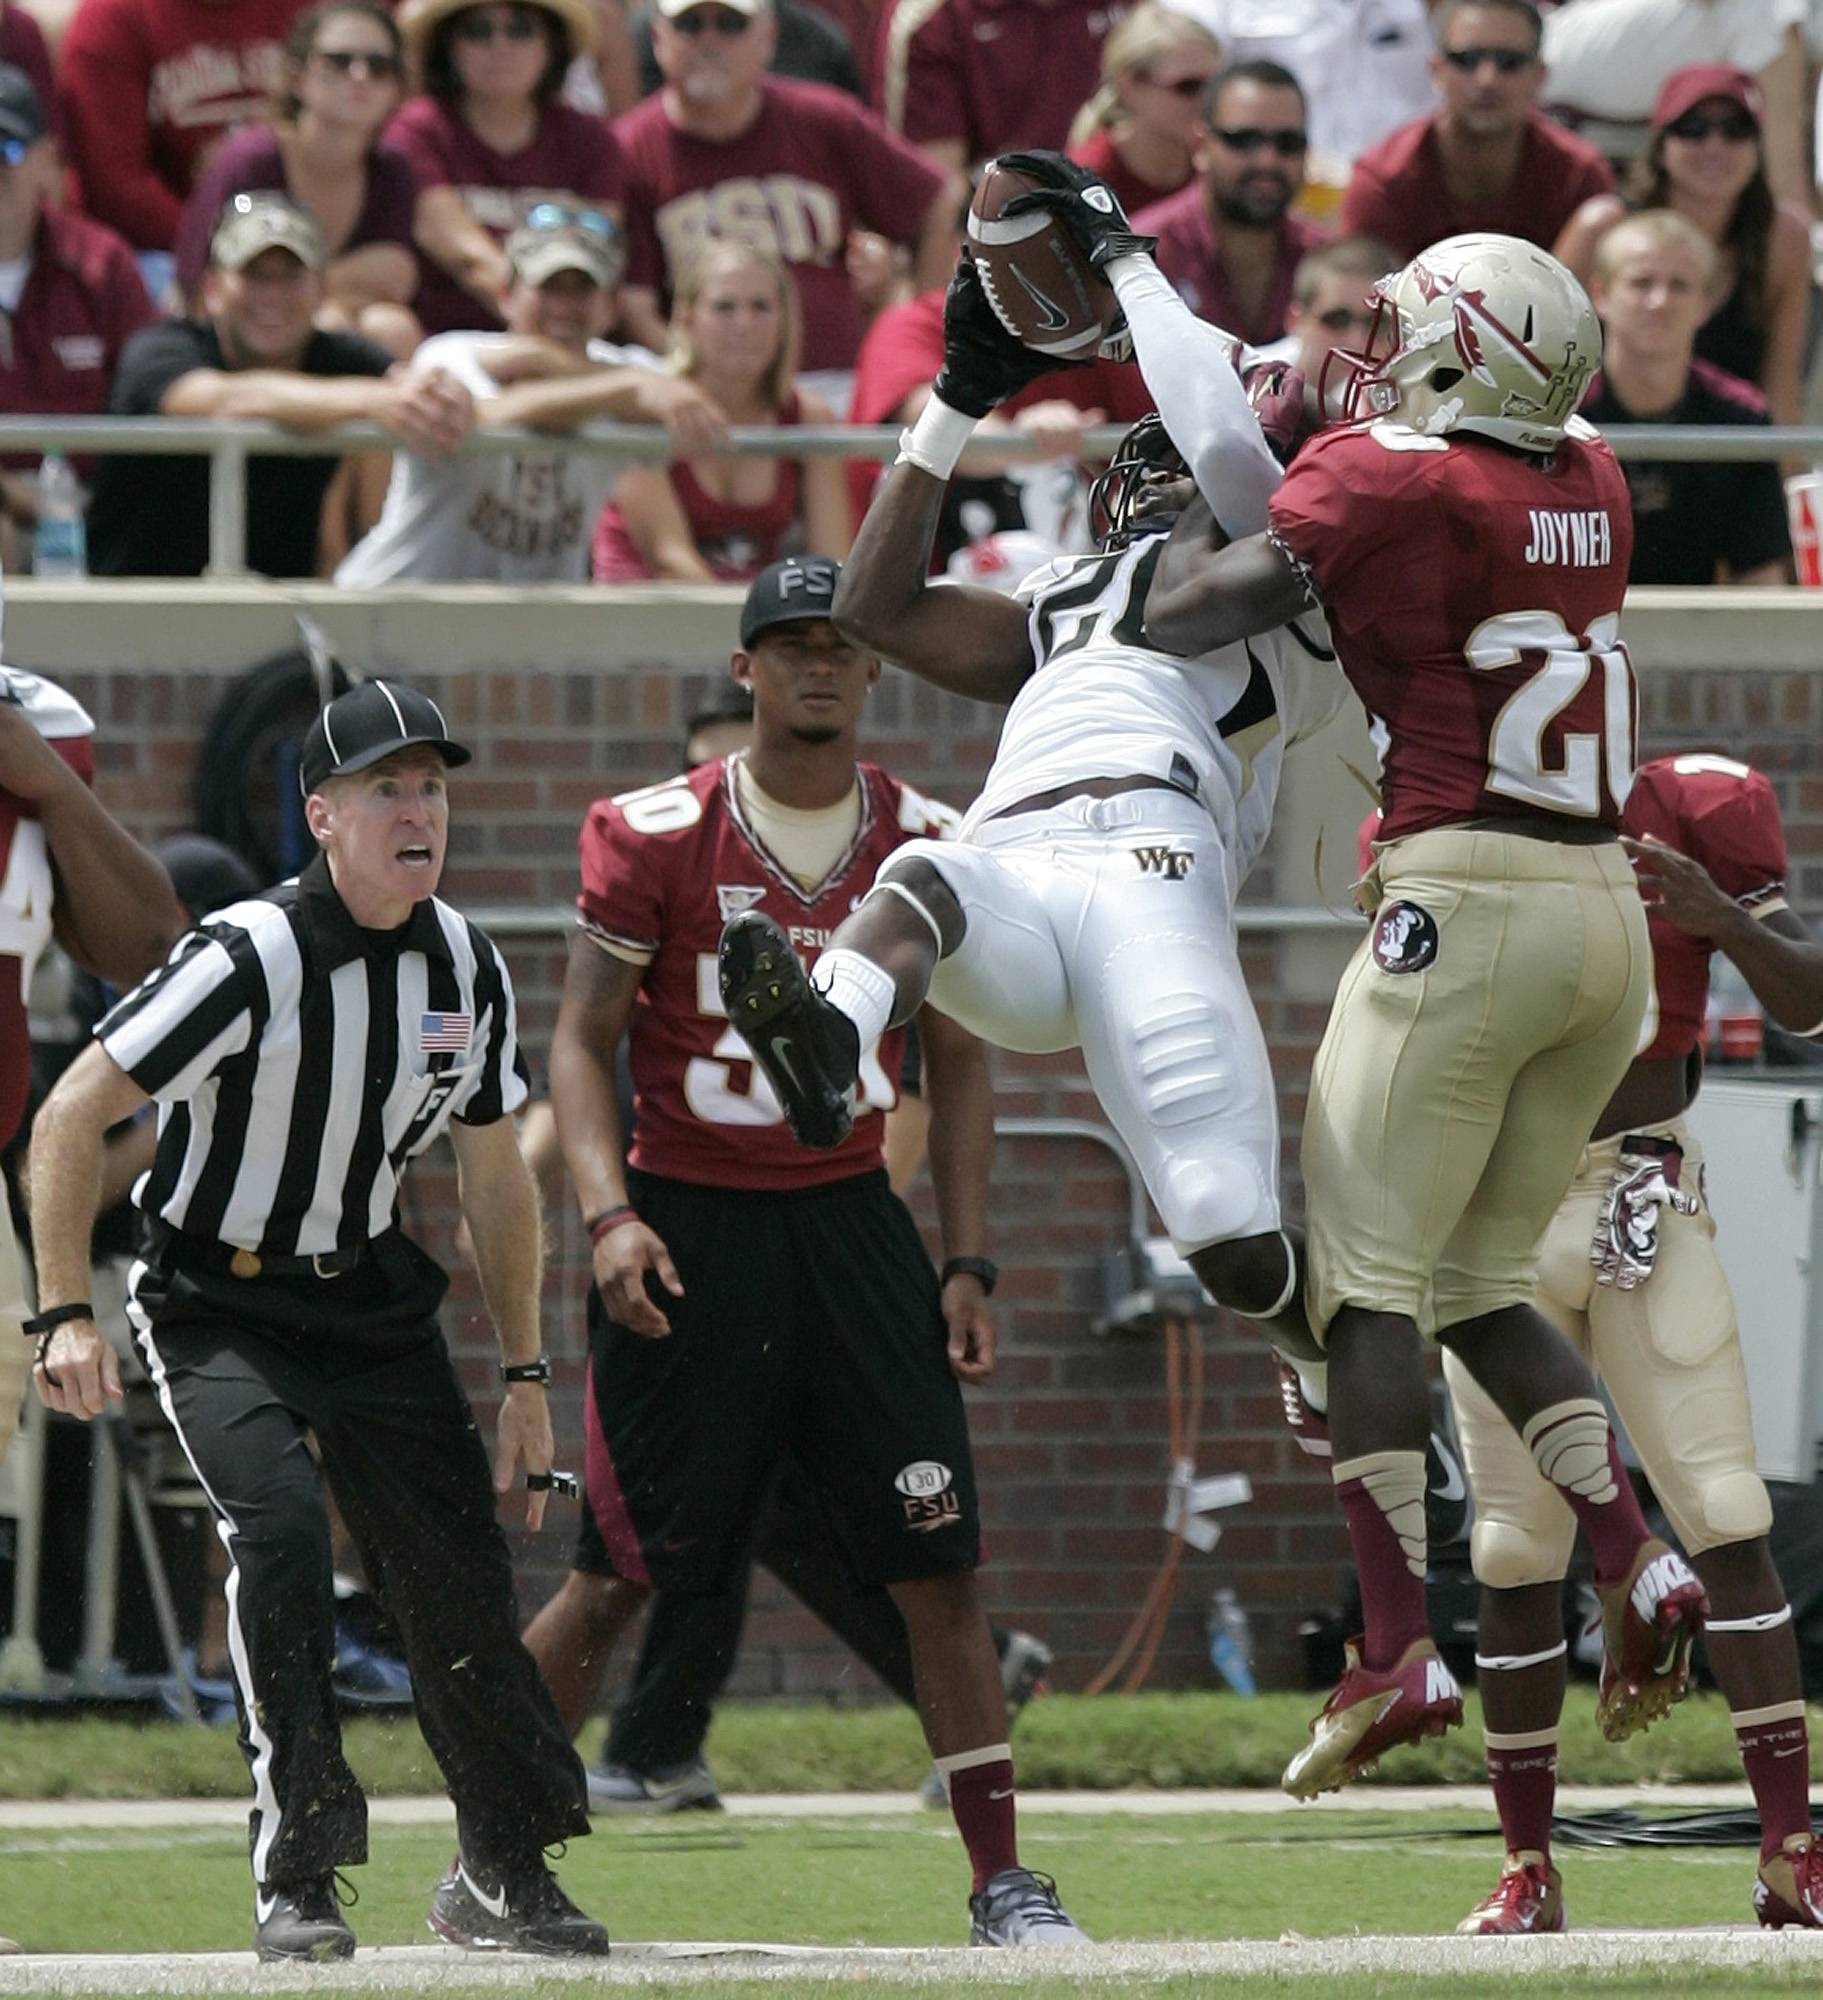 Wake Forest's Sherman Ragland catches a pass for 41 yards despite the defense of Florida State's Lamarcus Joyner. (AP Photo/Steve Cannon)